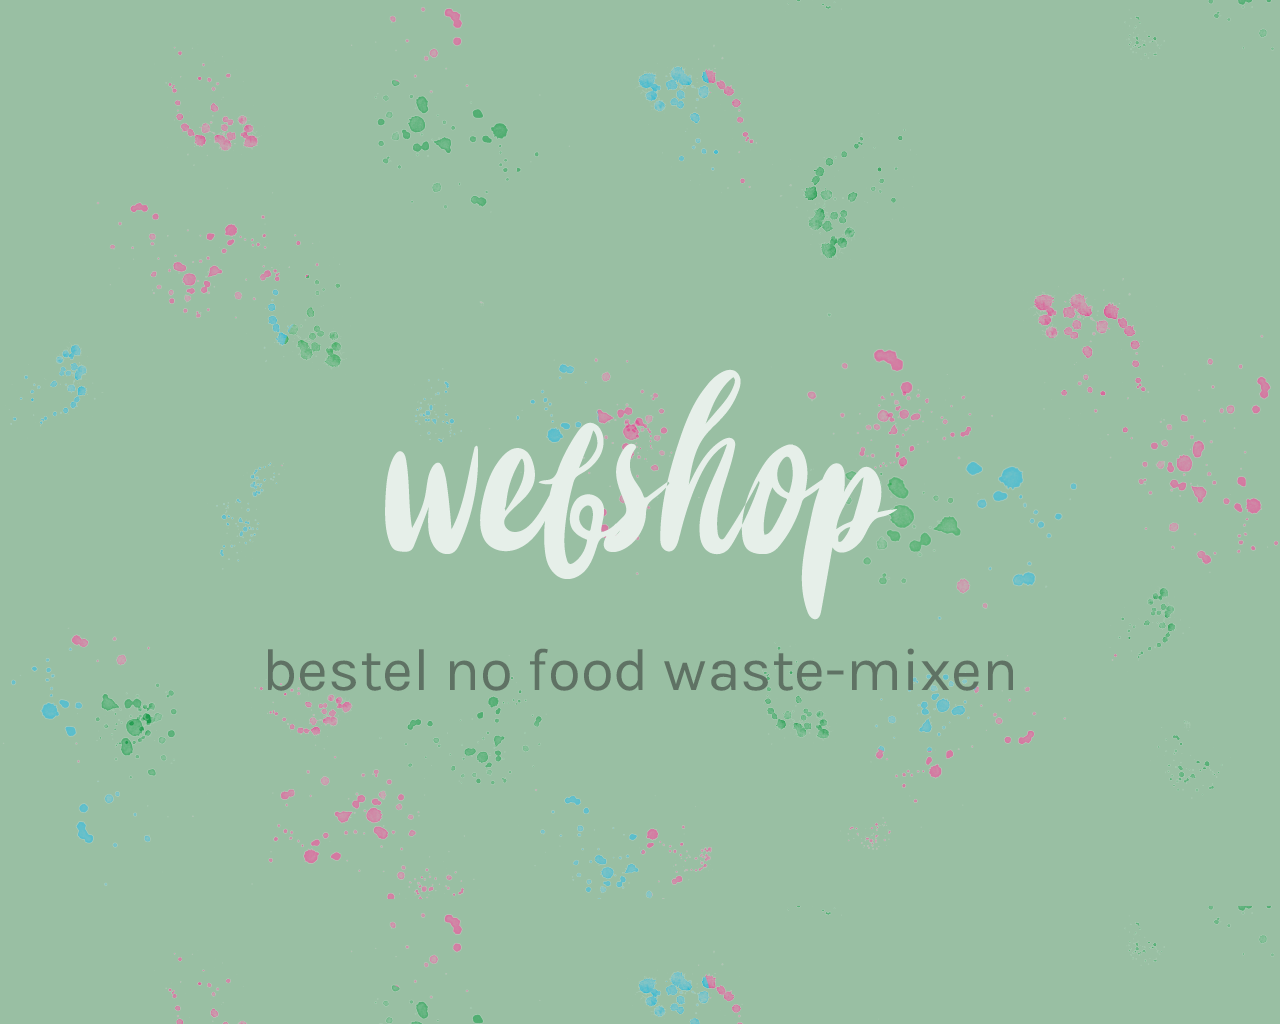 bestel no food waste mixen